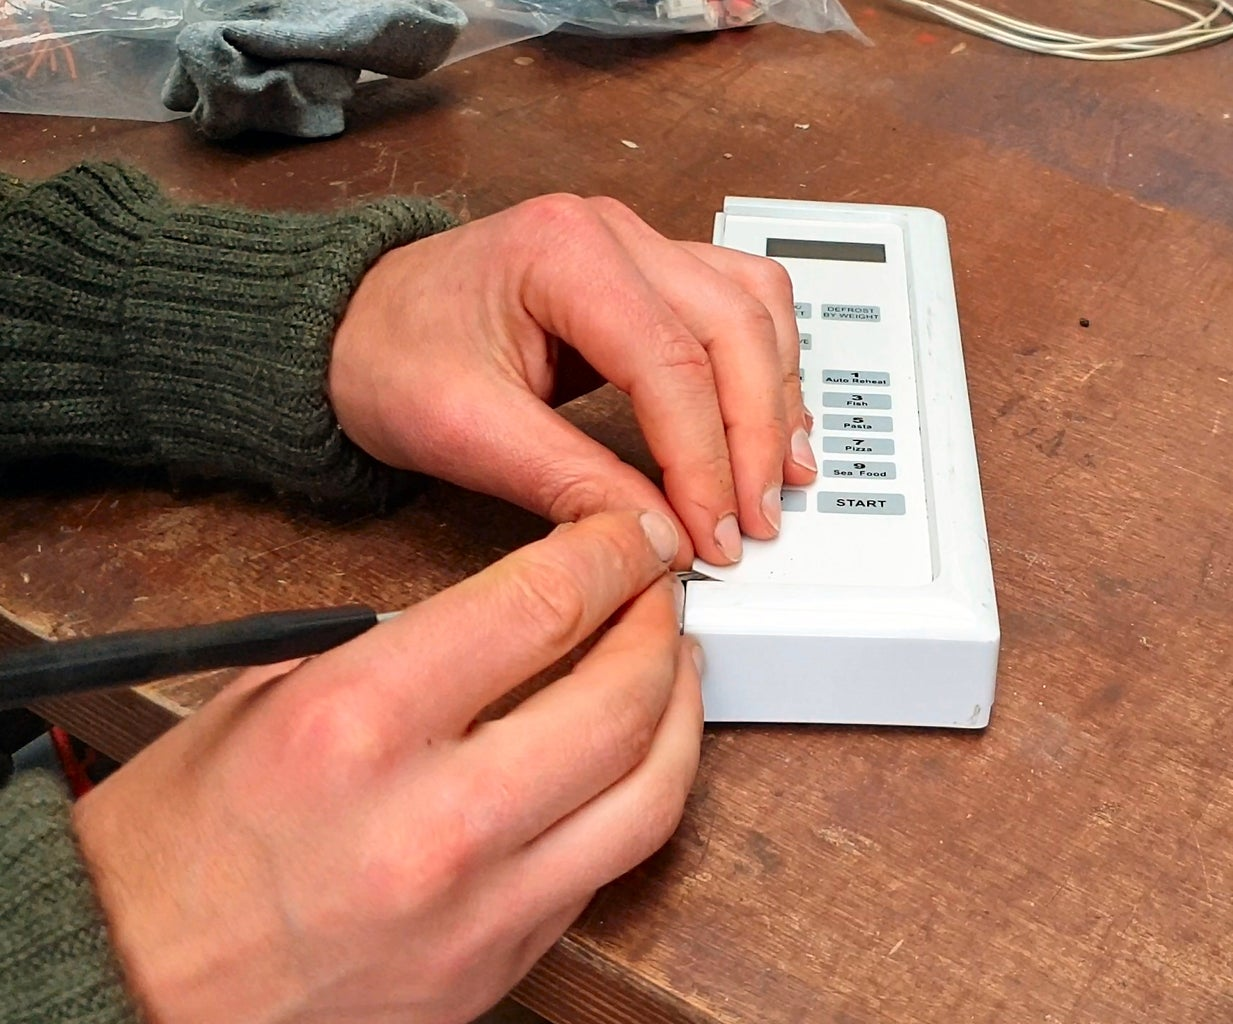 Adding a Microwave Timer #1 So Simple!